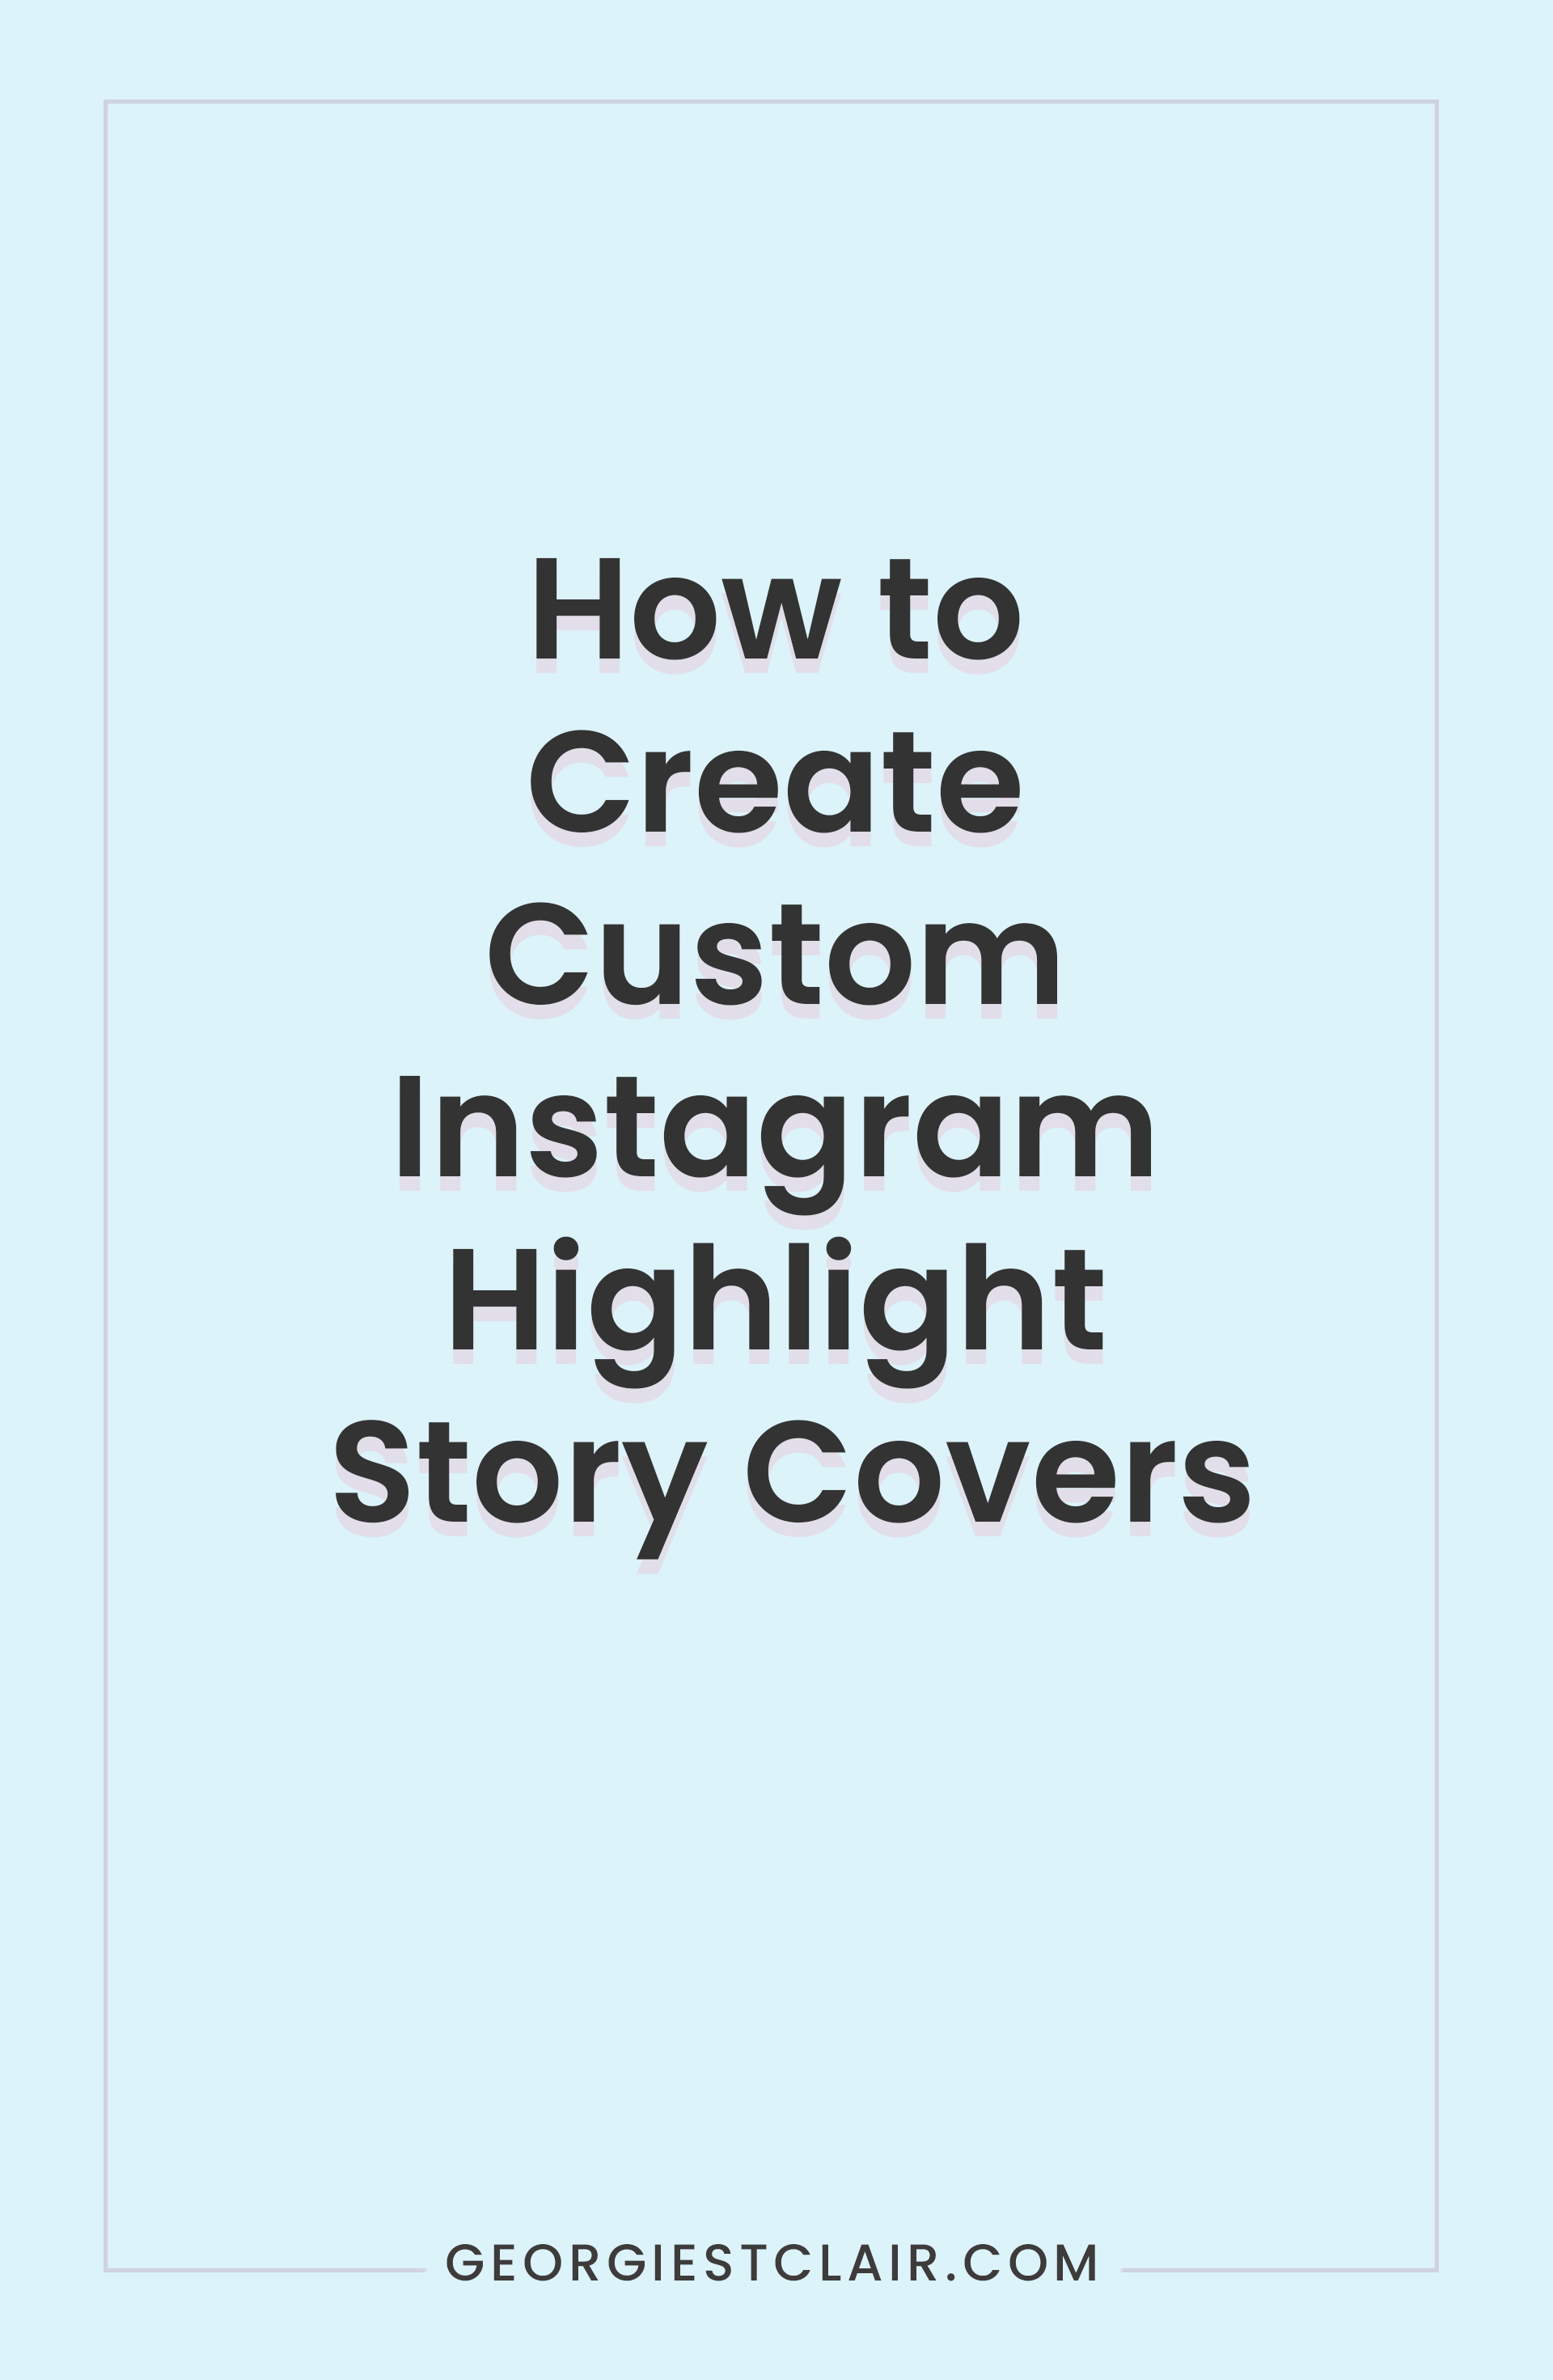 How-to-create-custom-Instagram-story-highlight-covers-Pinterest2.jpg